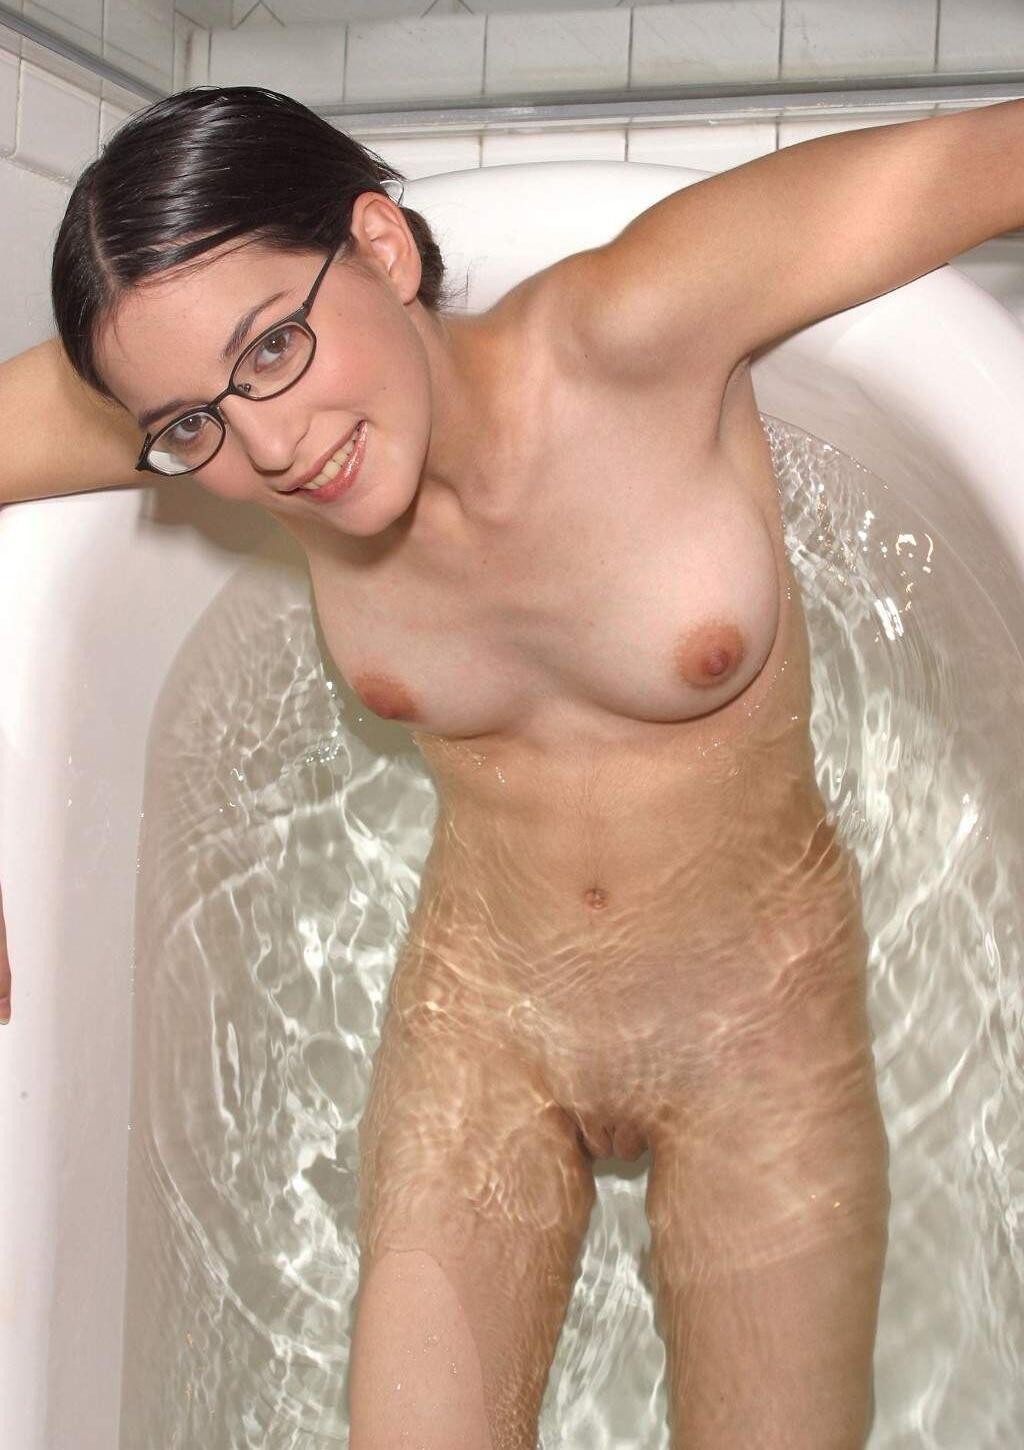 xxx bavarian at classic porn tube page